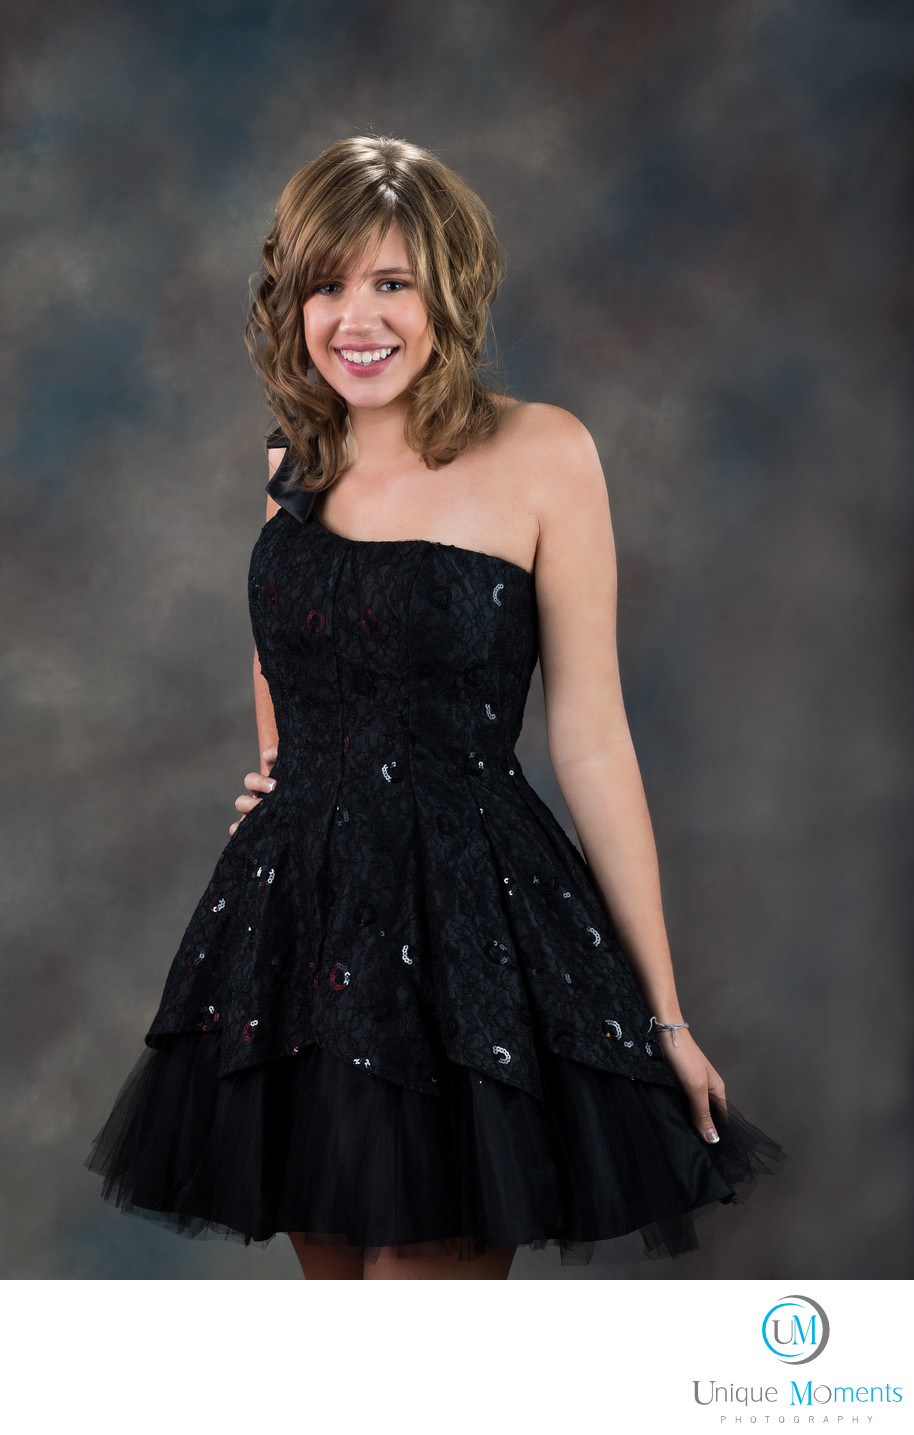 Prom Dress Pictures Gig Harbor Senior Photographer